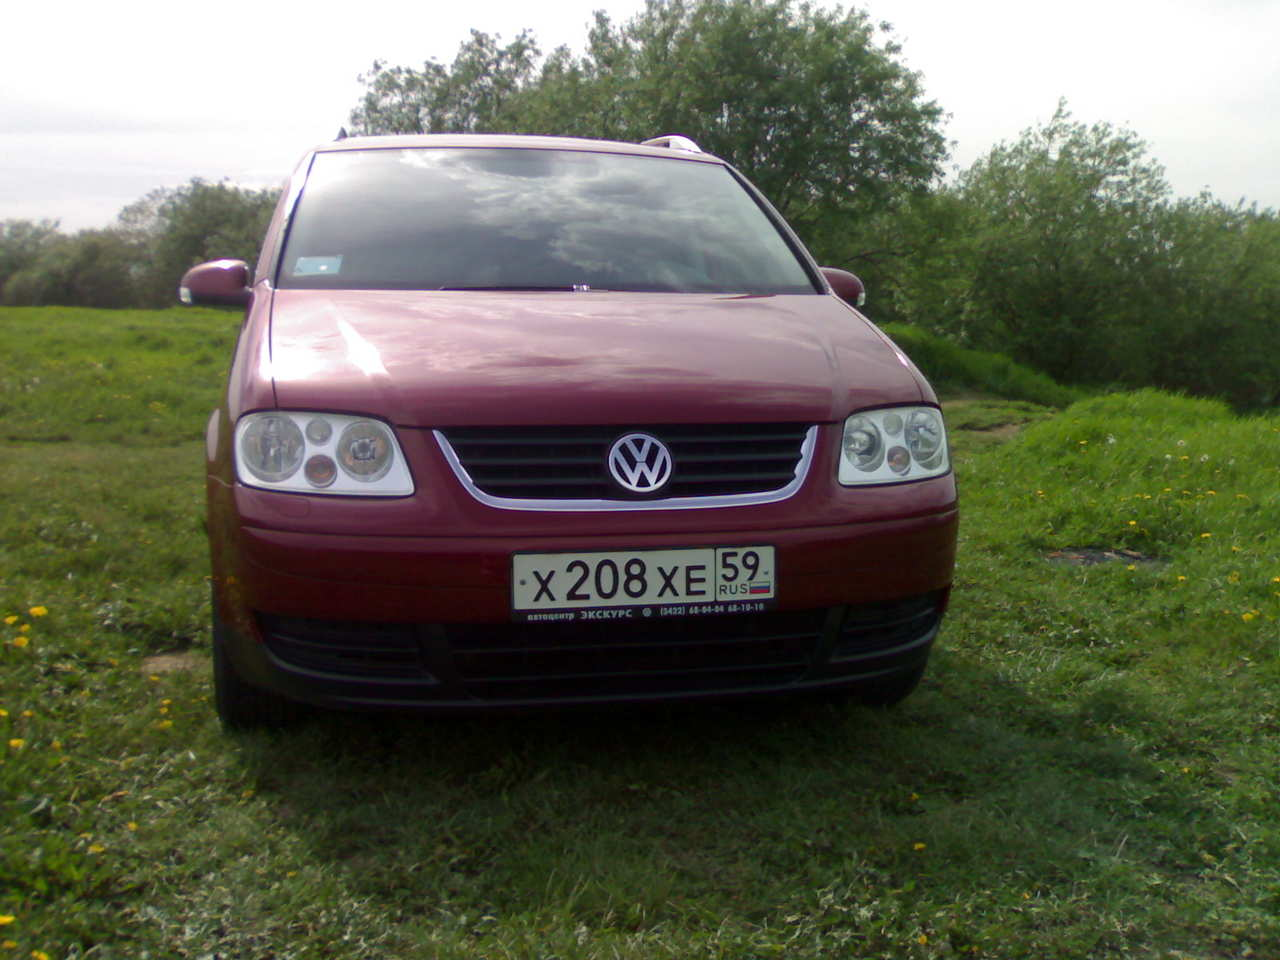 2004 volkswagen touran photos 1 9 diesel ff manual for sale. Black Bedroom Furniture Sets. Home Design Ideas